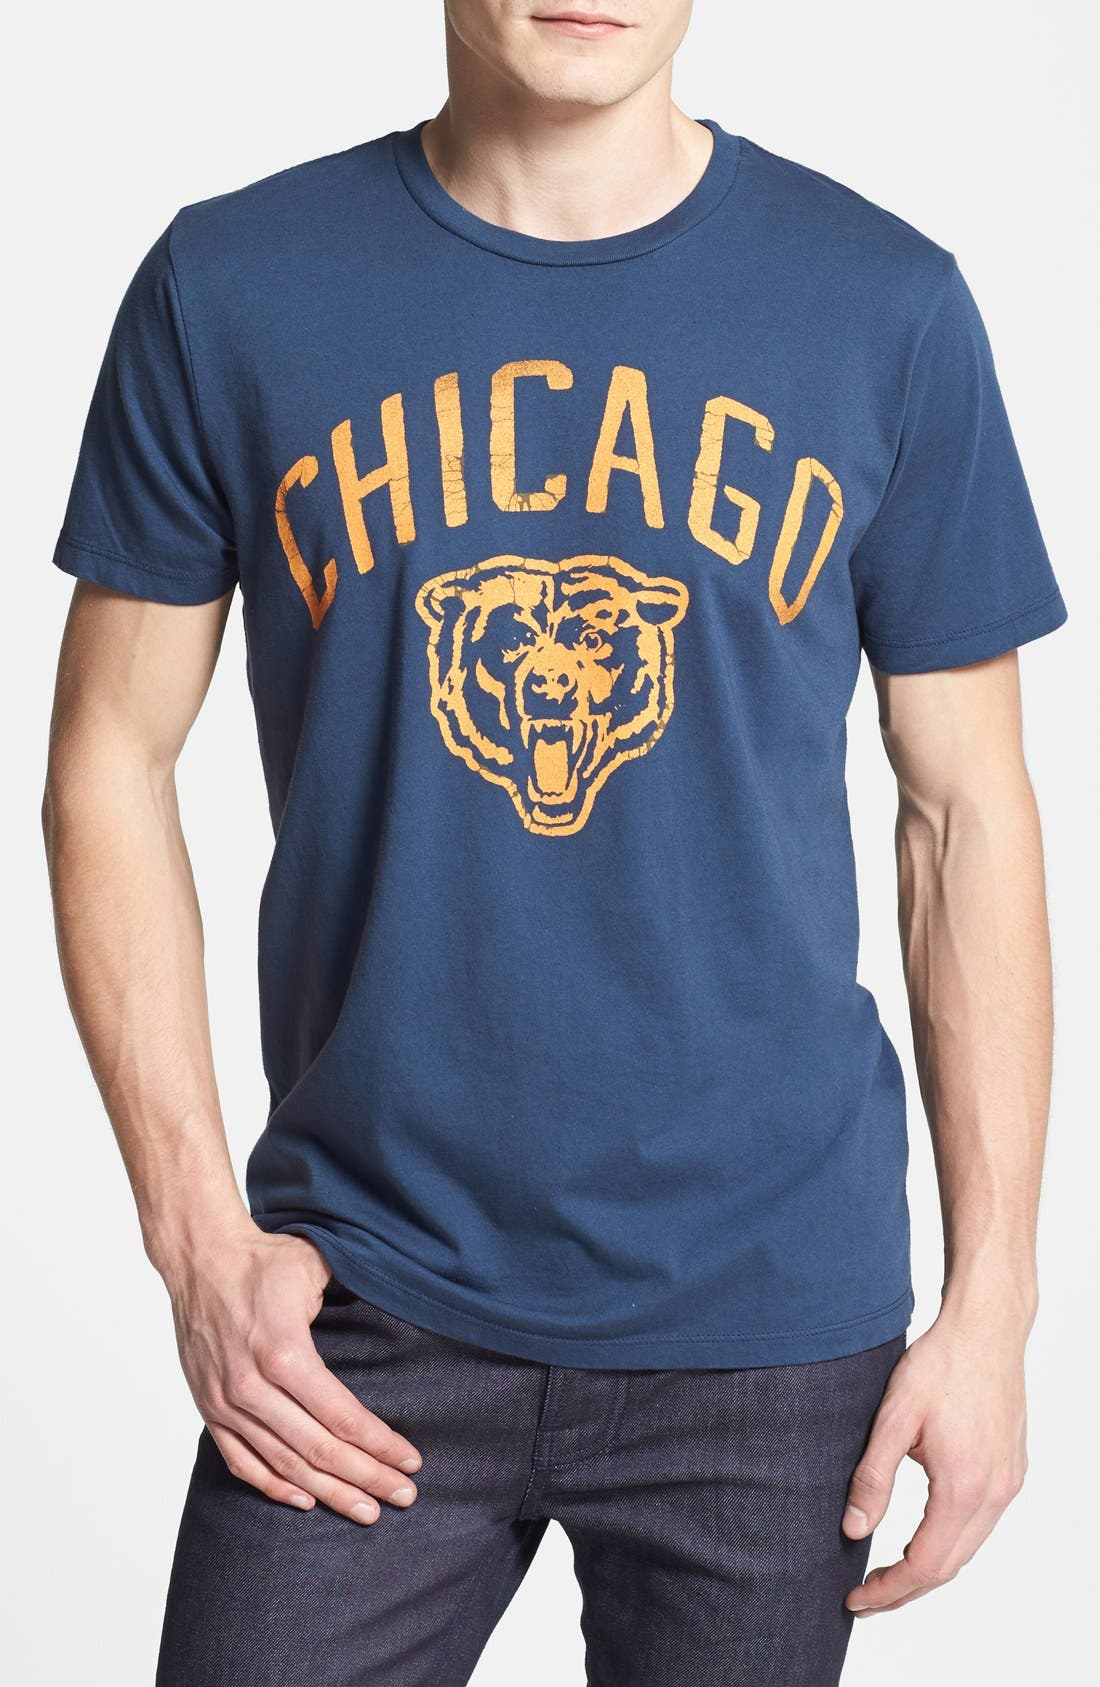 Alternate Image 1 Selected - Junk Food 'Chicago Bears' Graphic T-Shirt